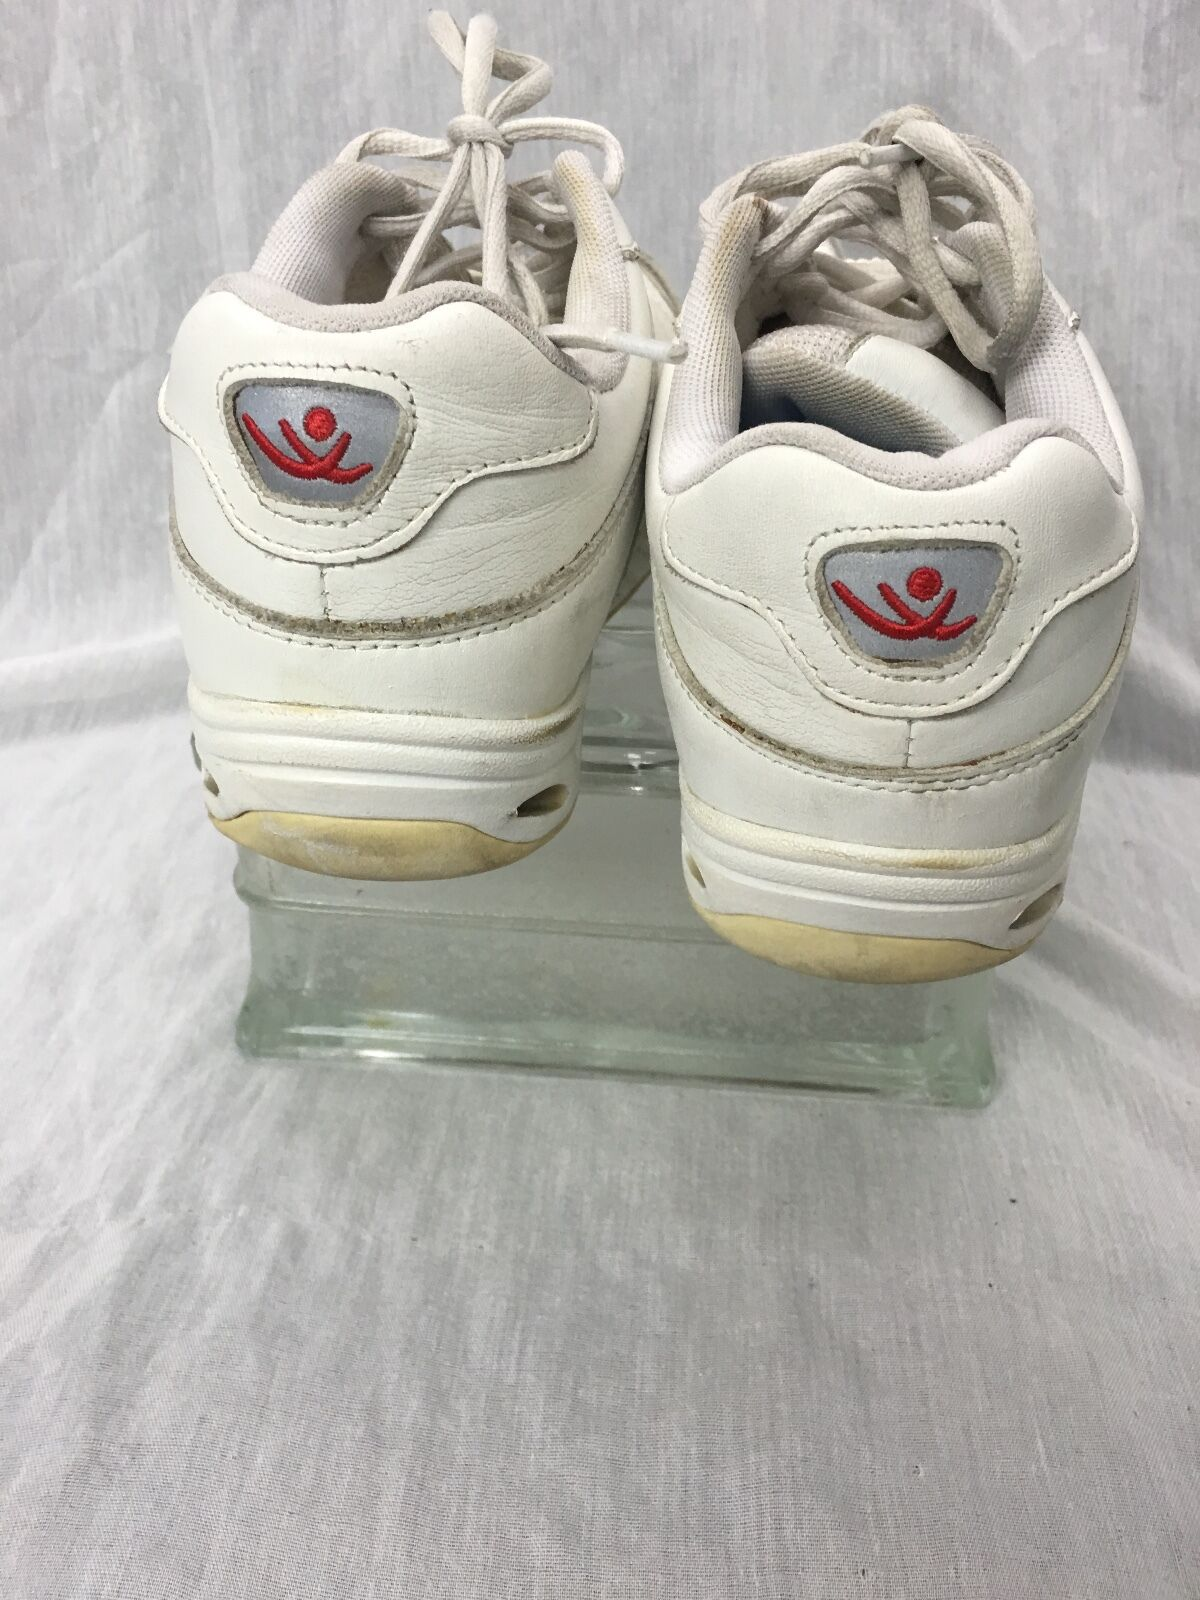 Chung Shi  Vintage Training Stafild Damenschuhe Walking Toning Training Vintage Sneaker NICE  Sz 7 52107d